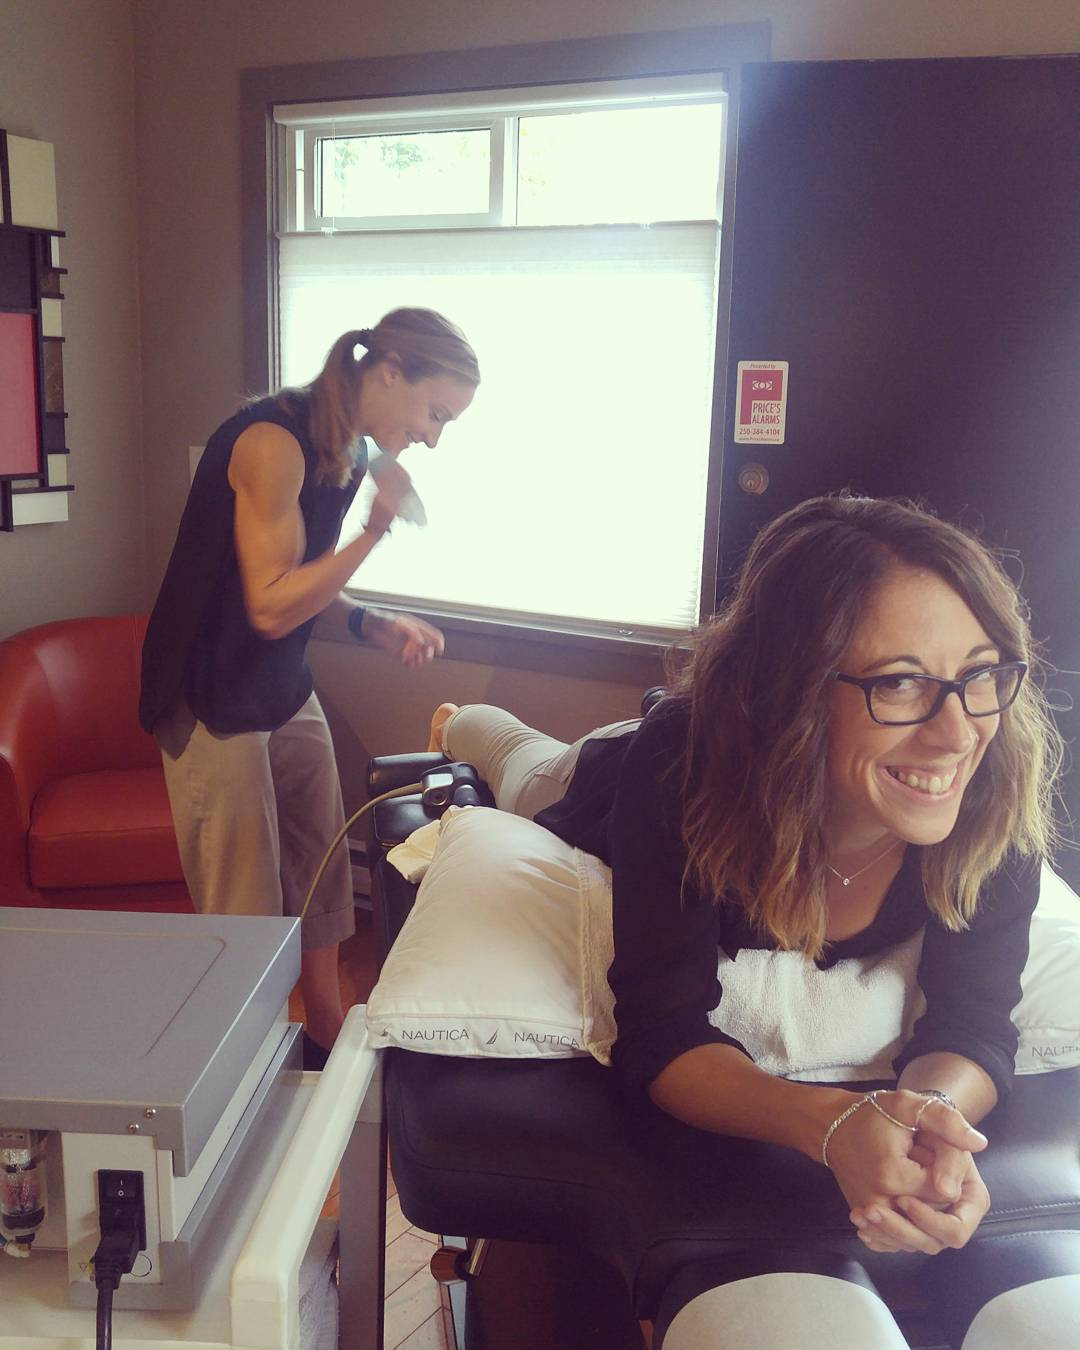 This is a photo of a woman with shoulder length brown hair smiling and lying on her stomach on a narrow bed while another woman with her hair pulled back treats her ankle.